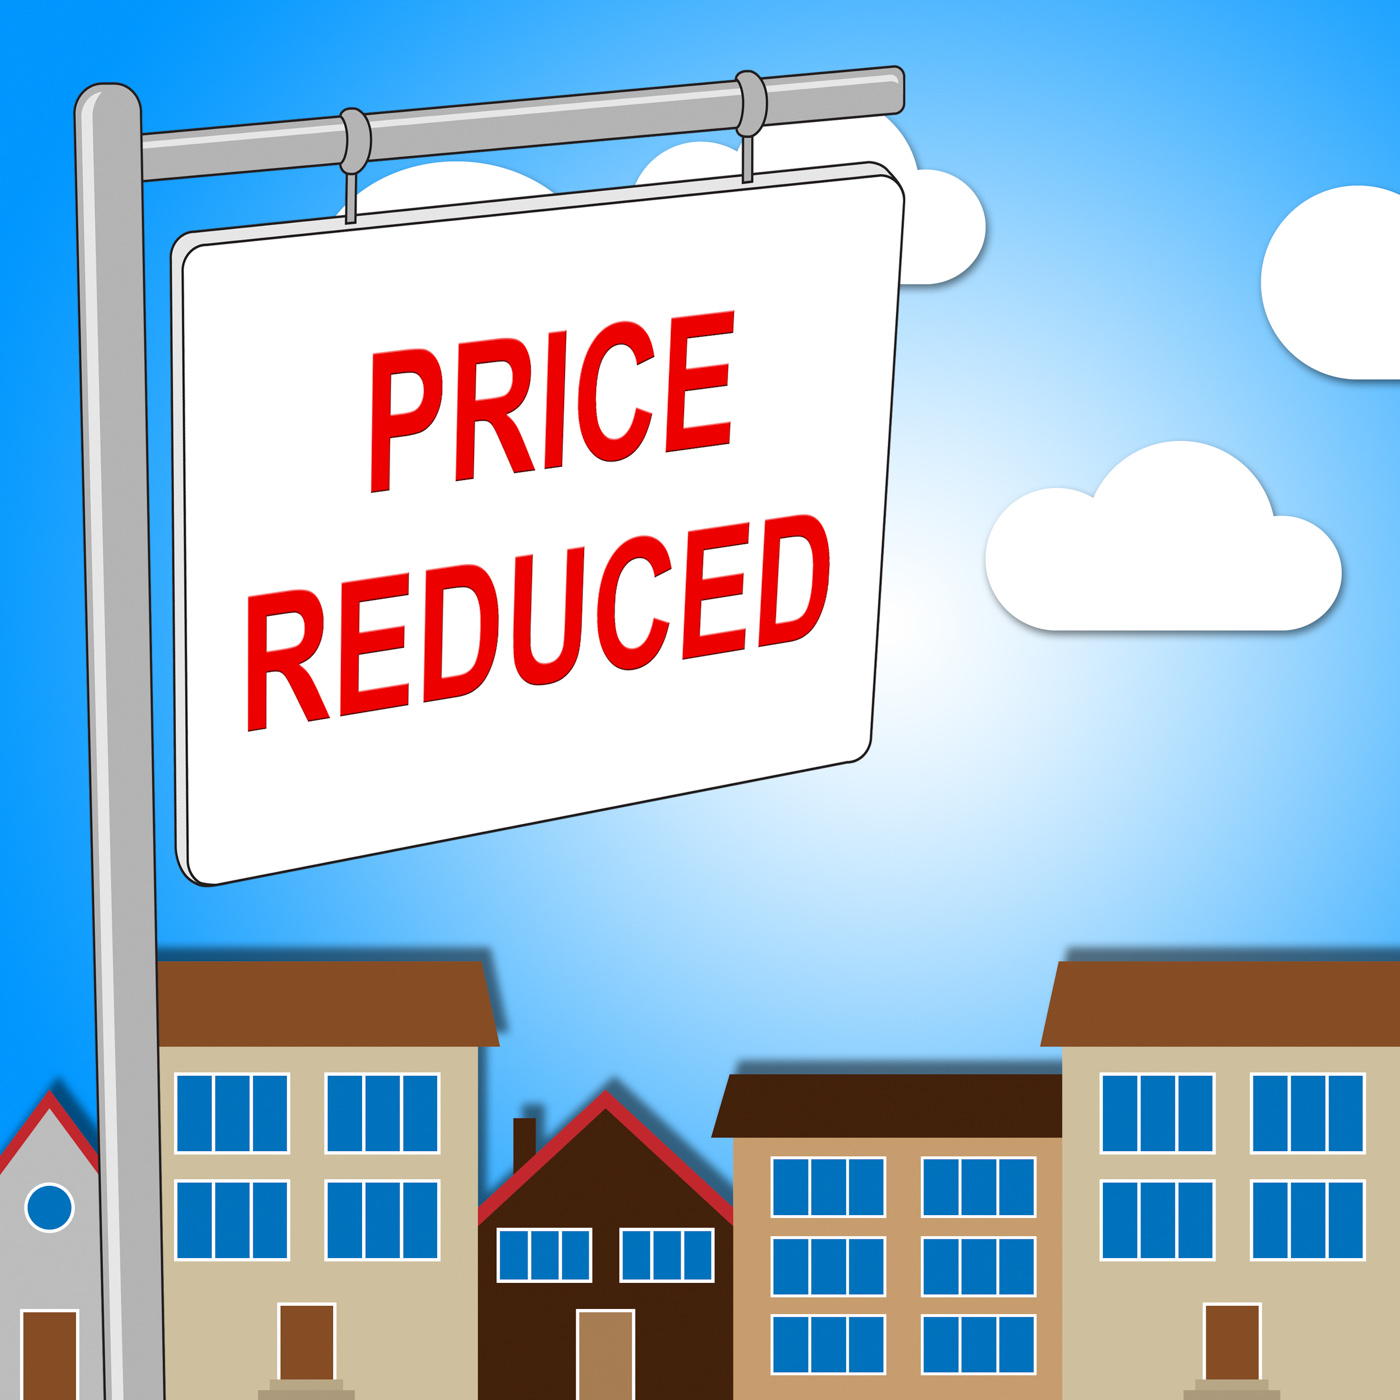 House Price Reduced Means Properties Offer And Bungalow, Promo, Savings, Sales, Sale, HQ Photo